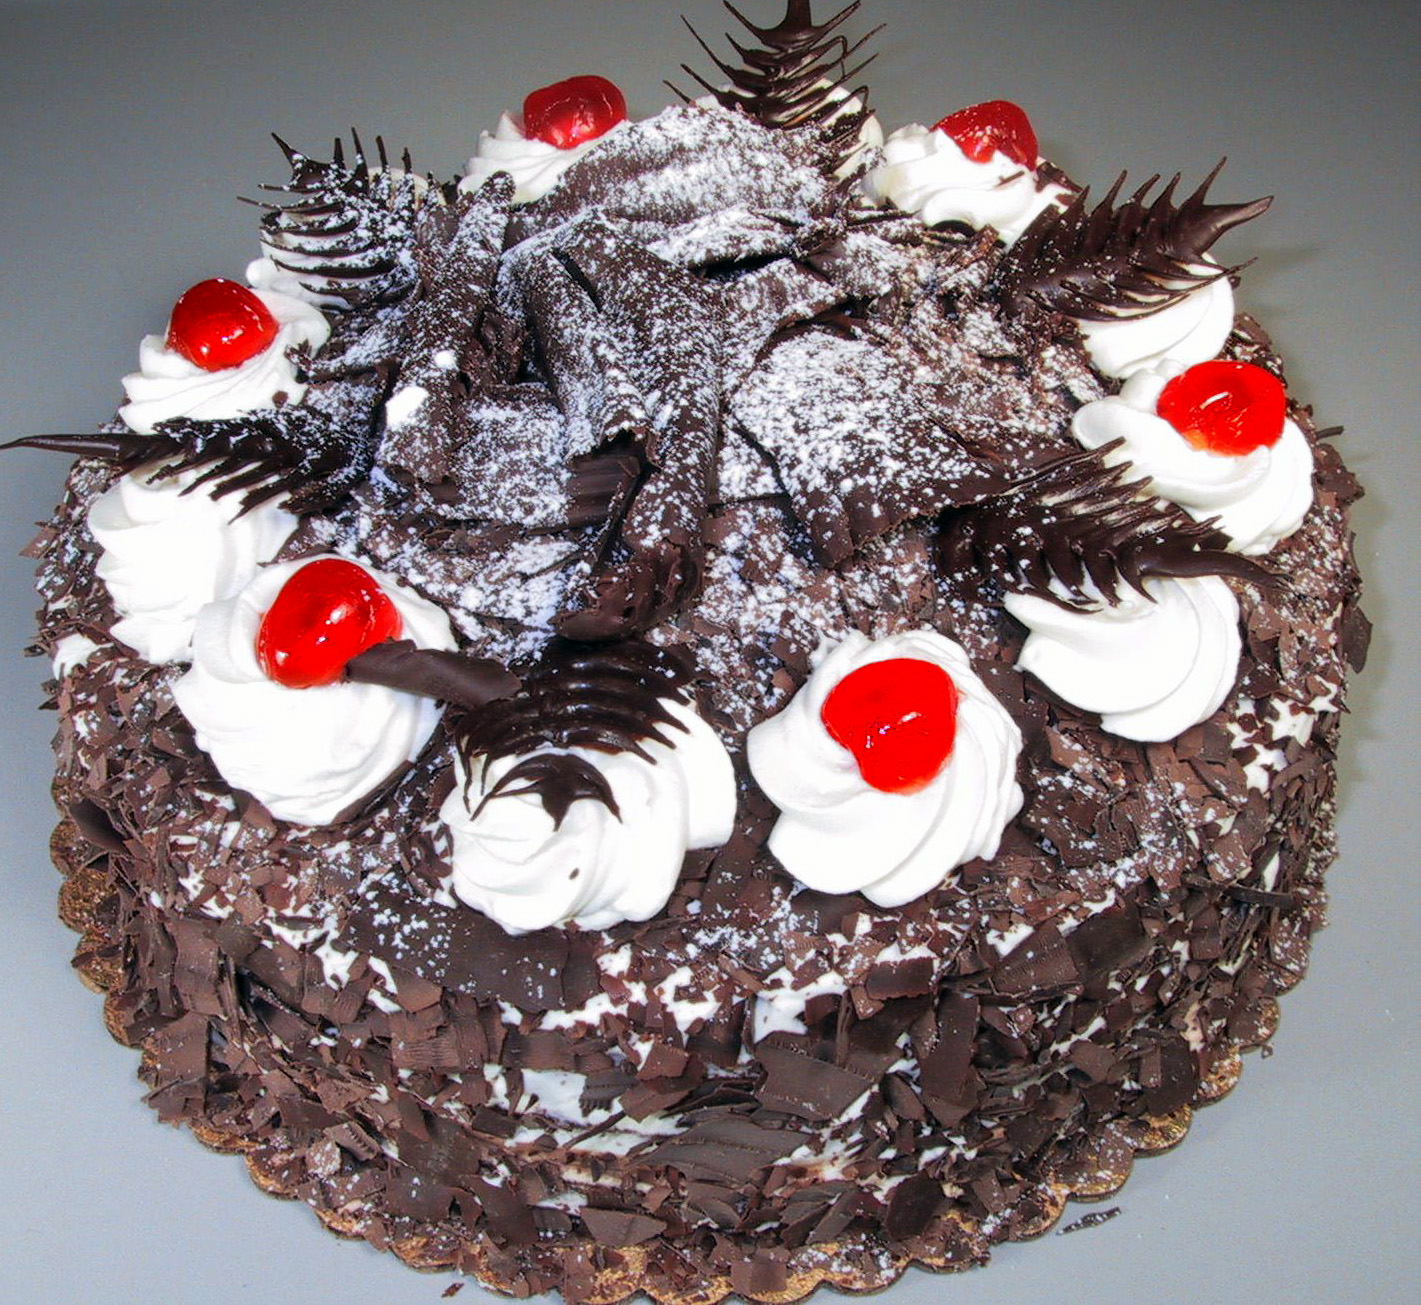 Black Forest Cake Decoration Images : 301 Moved Permanently